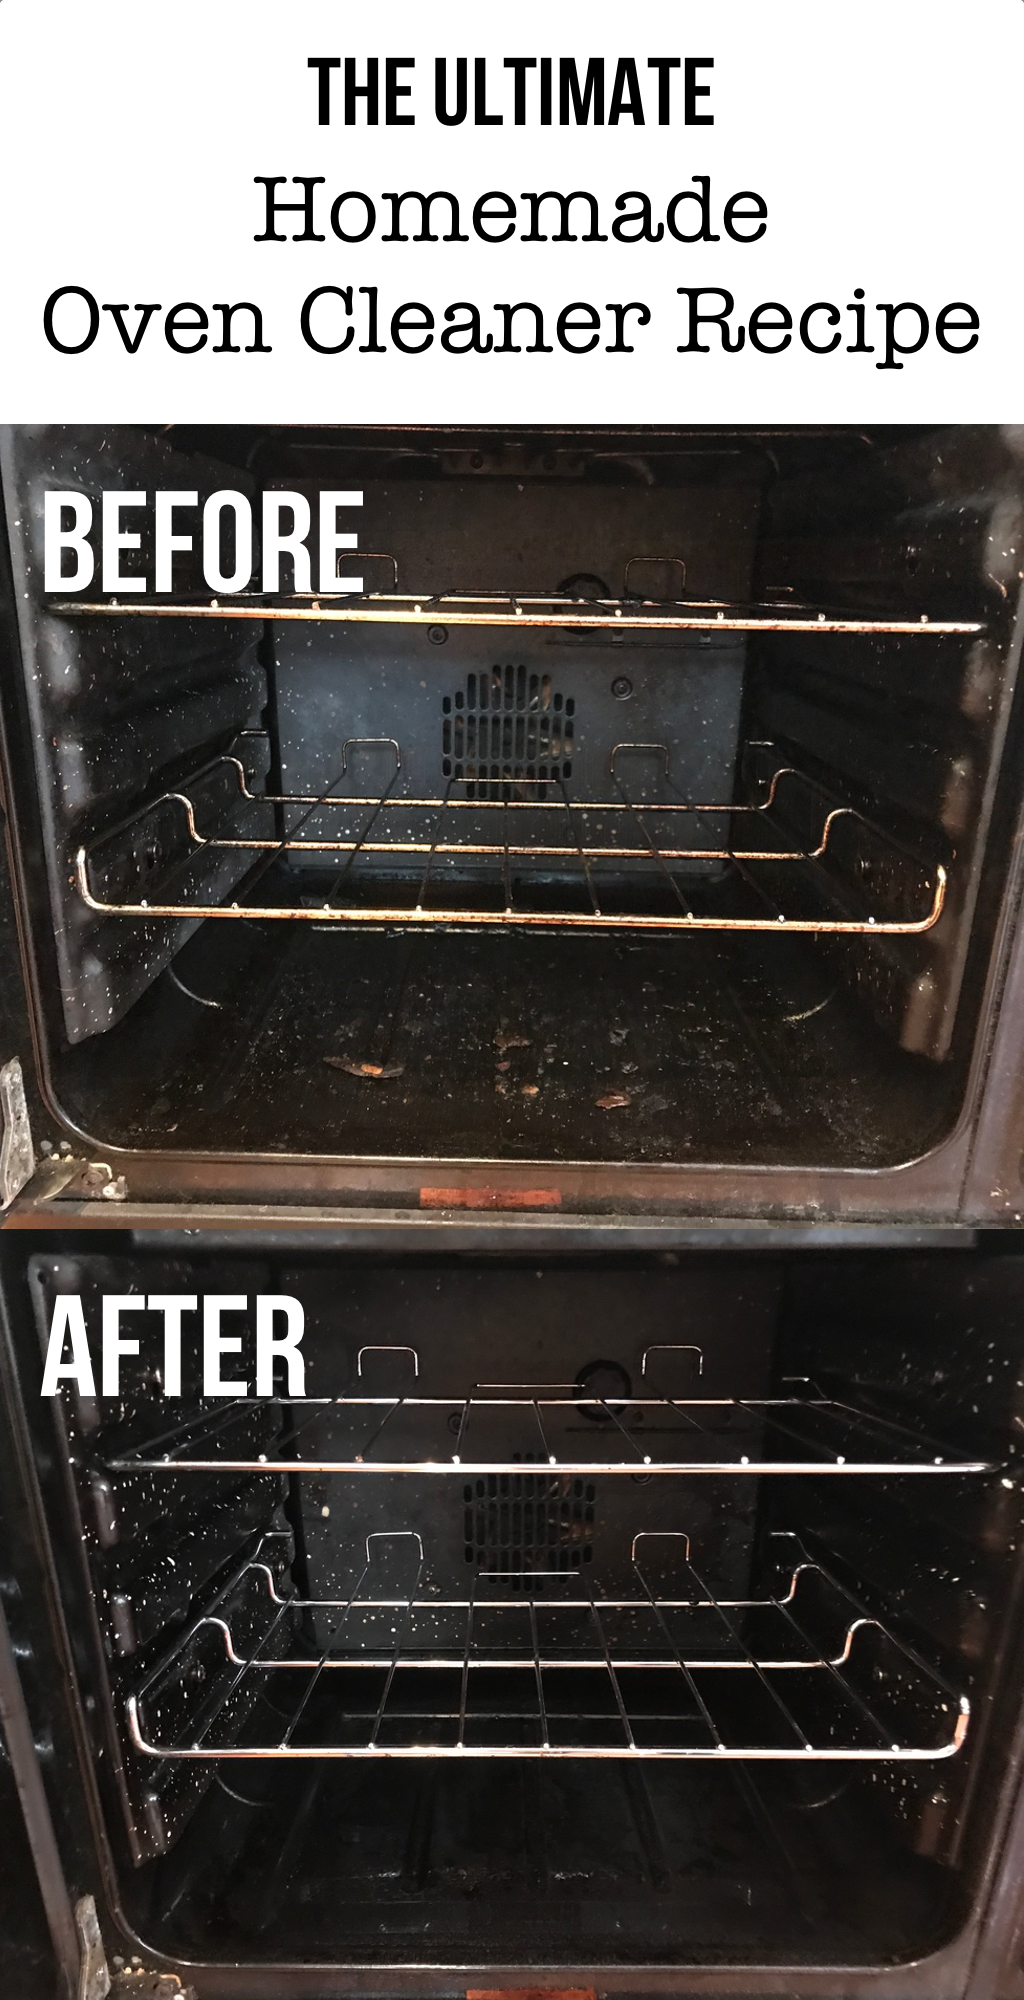 How to Make NonToxic Homemade Oven Cleaner Homemade